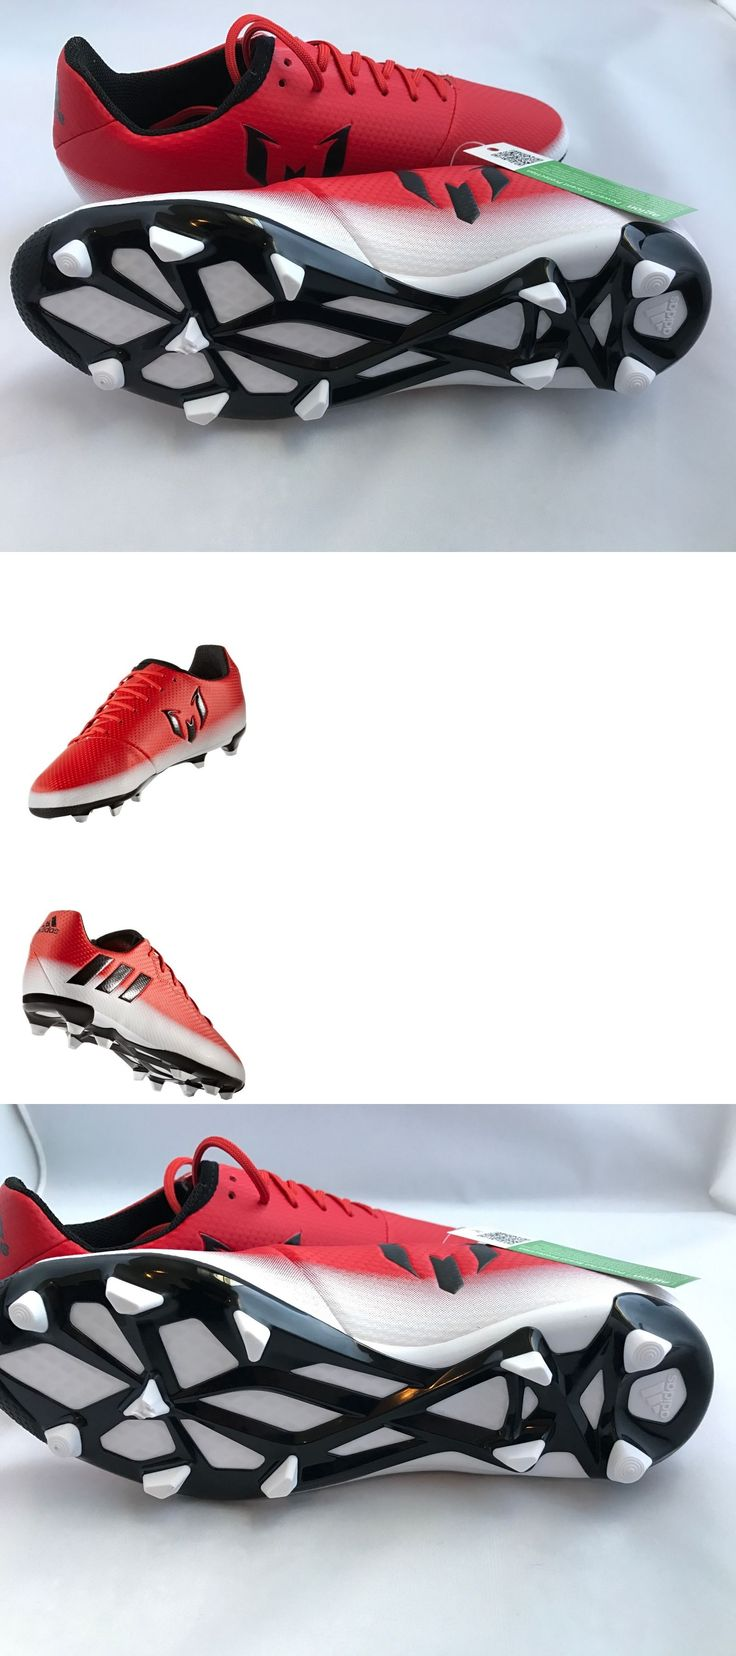 Youth 159177: New Adidas Messi 16.3 Fg Kids Soccer Cleat Free Shipping No Box Included -> BUY IT NOW ONLY: $55 on eBay!